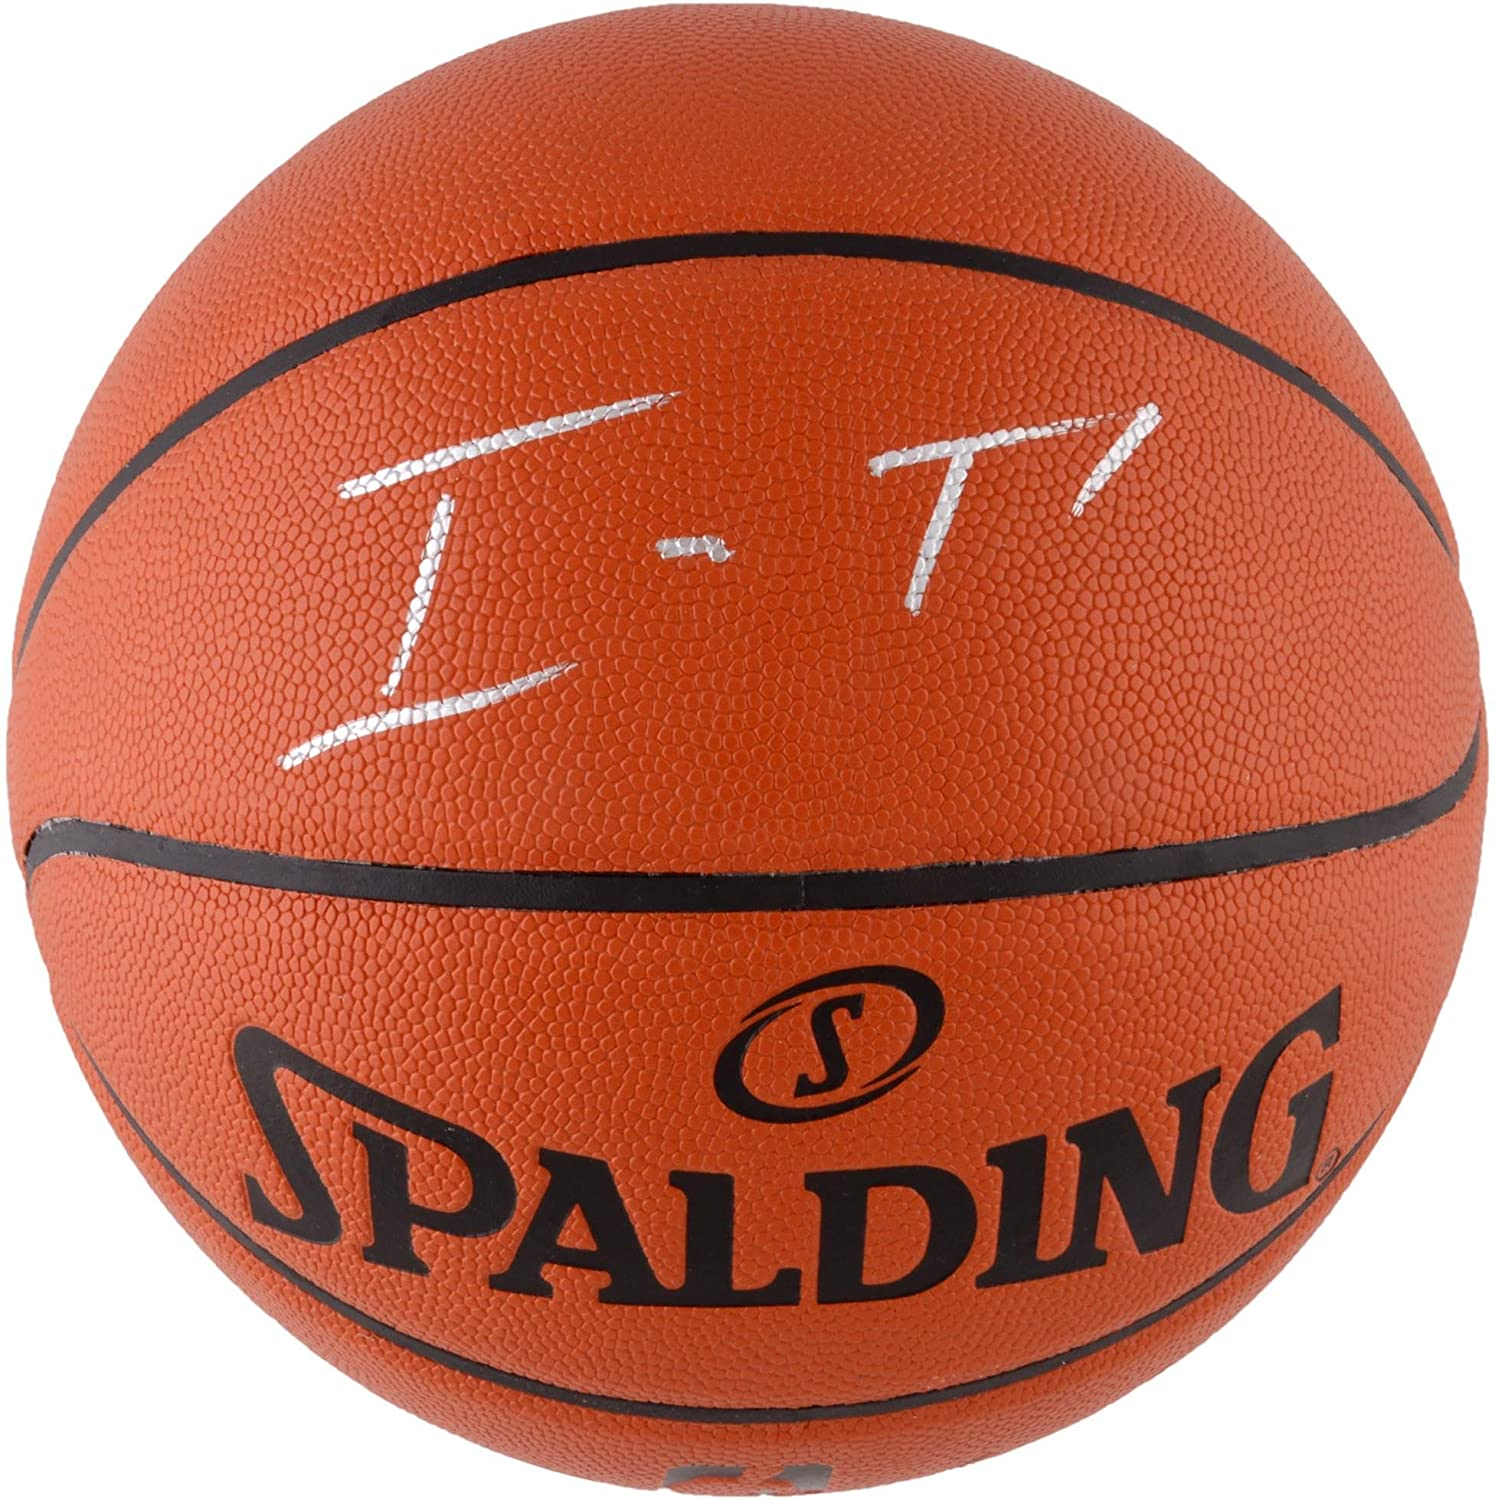 Isaiah Thomas Los Angeles Lakers Autographed Indoor/Outdoor Basketball - Fanatics Authentic Certified